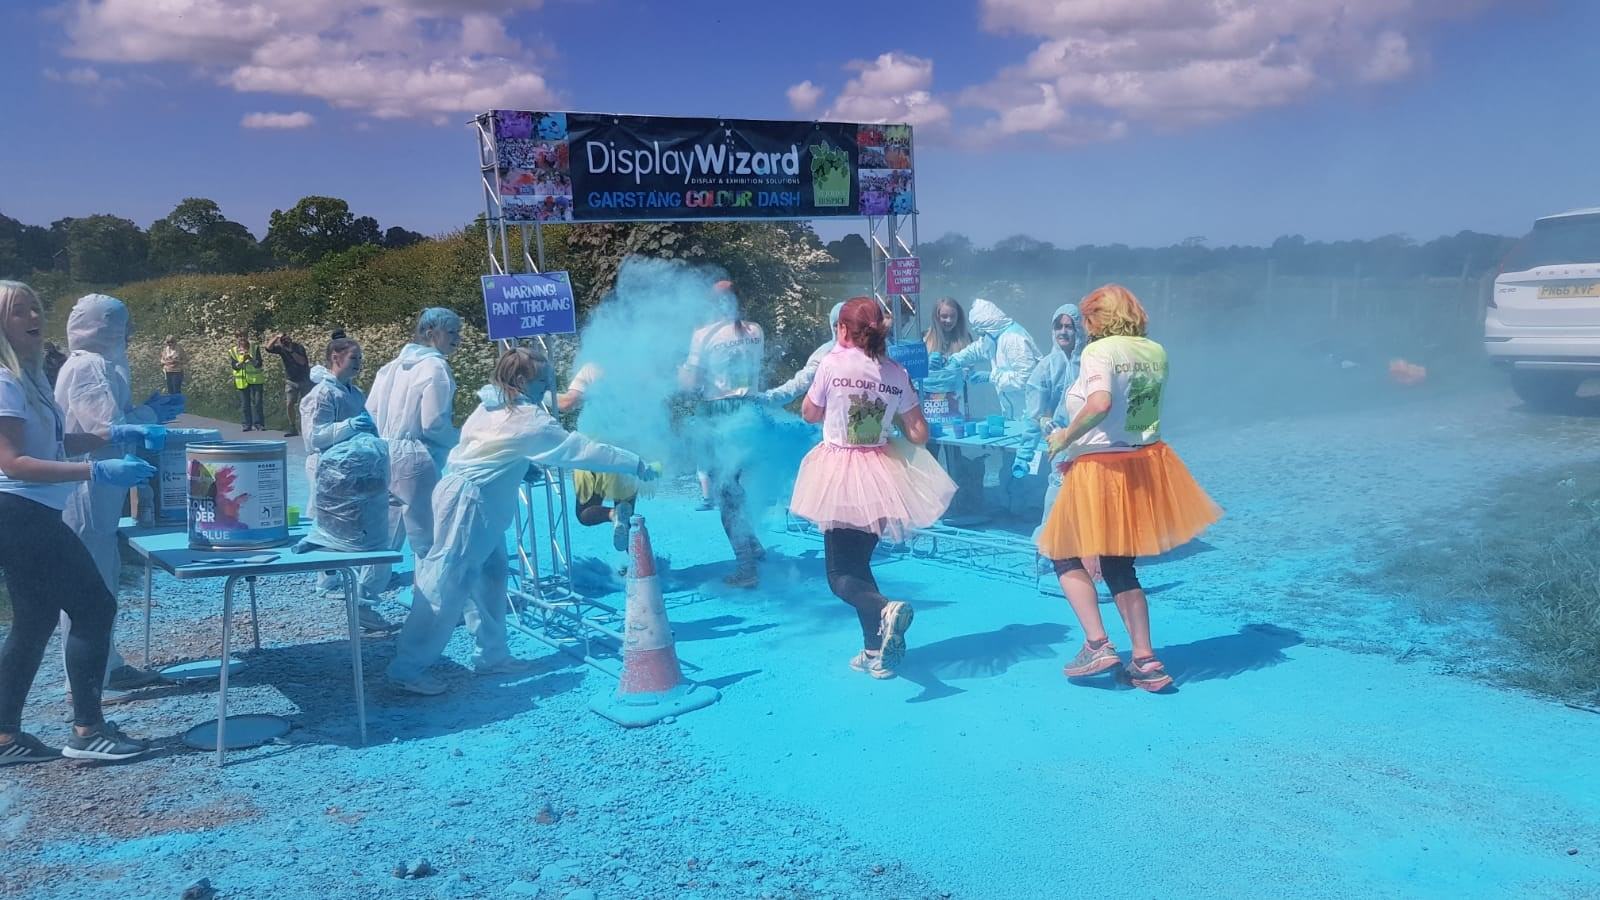 Display Wizard Support Garstang 2019 Colour Dash